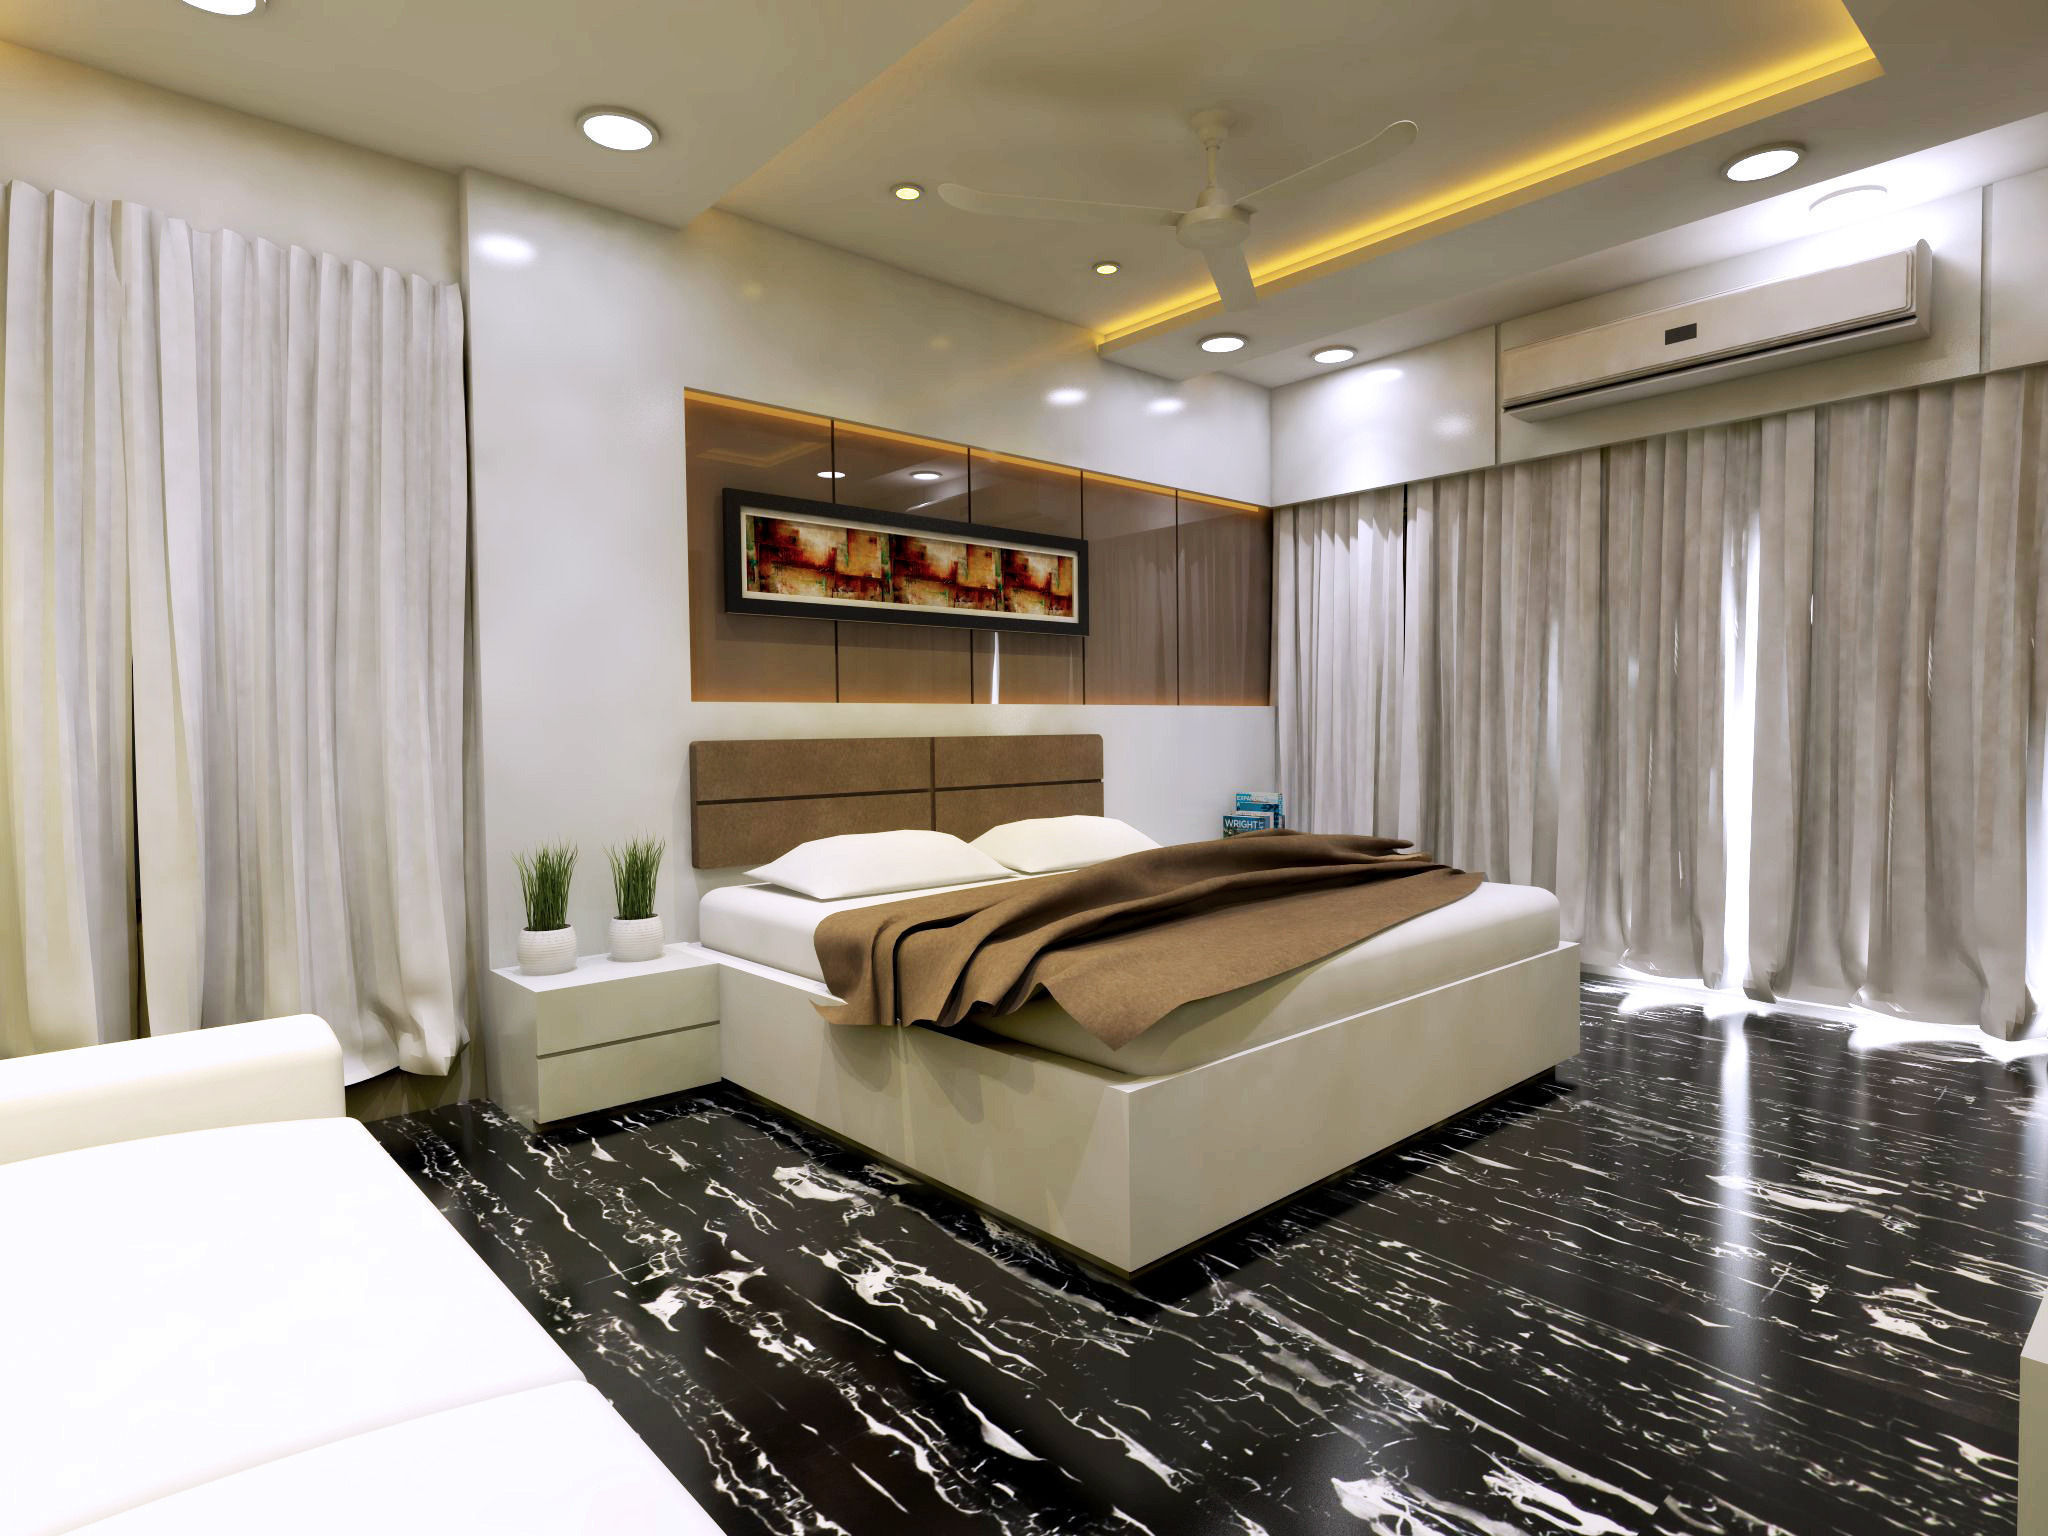 Modern bedroom interior vray rendered 3d model skp for 3d model room design